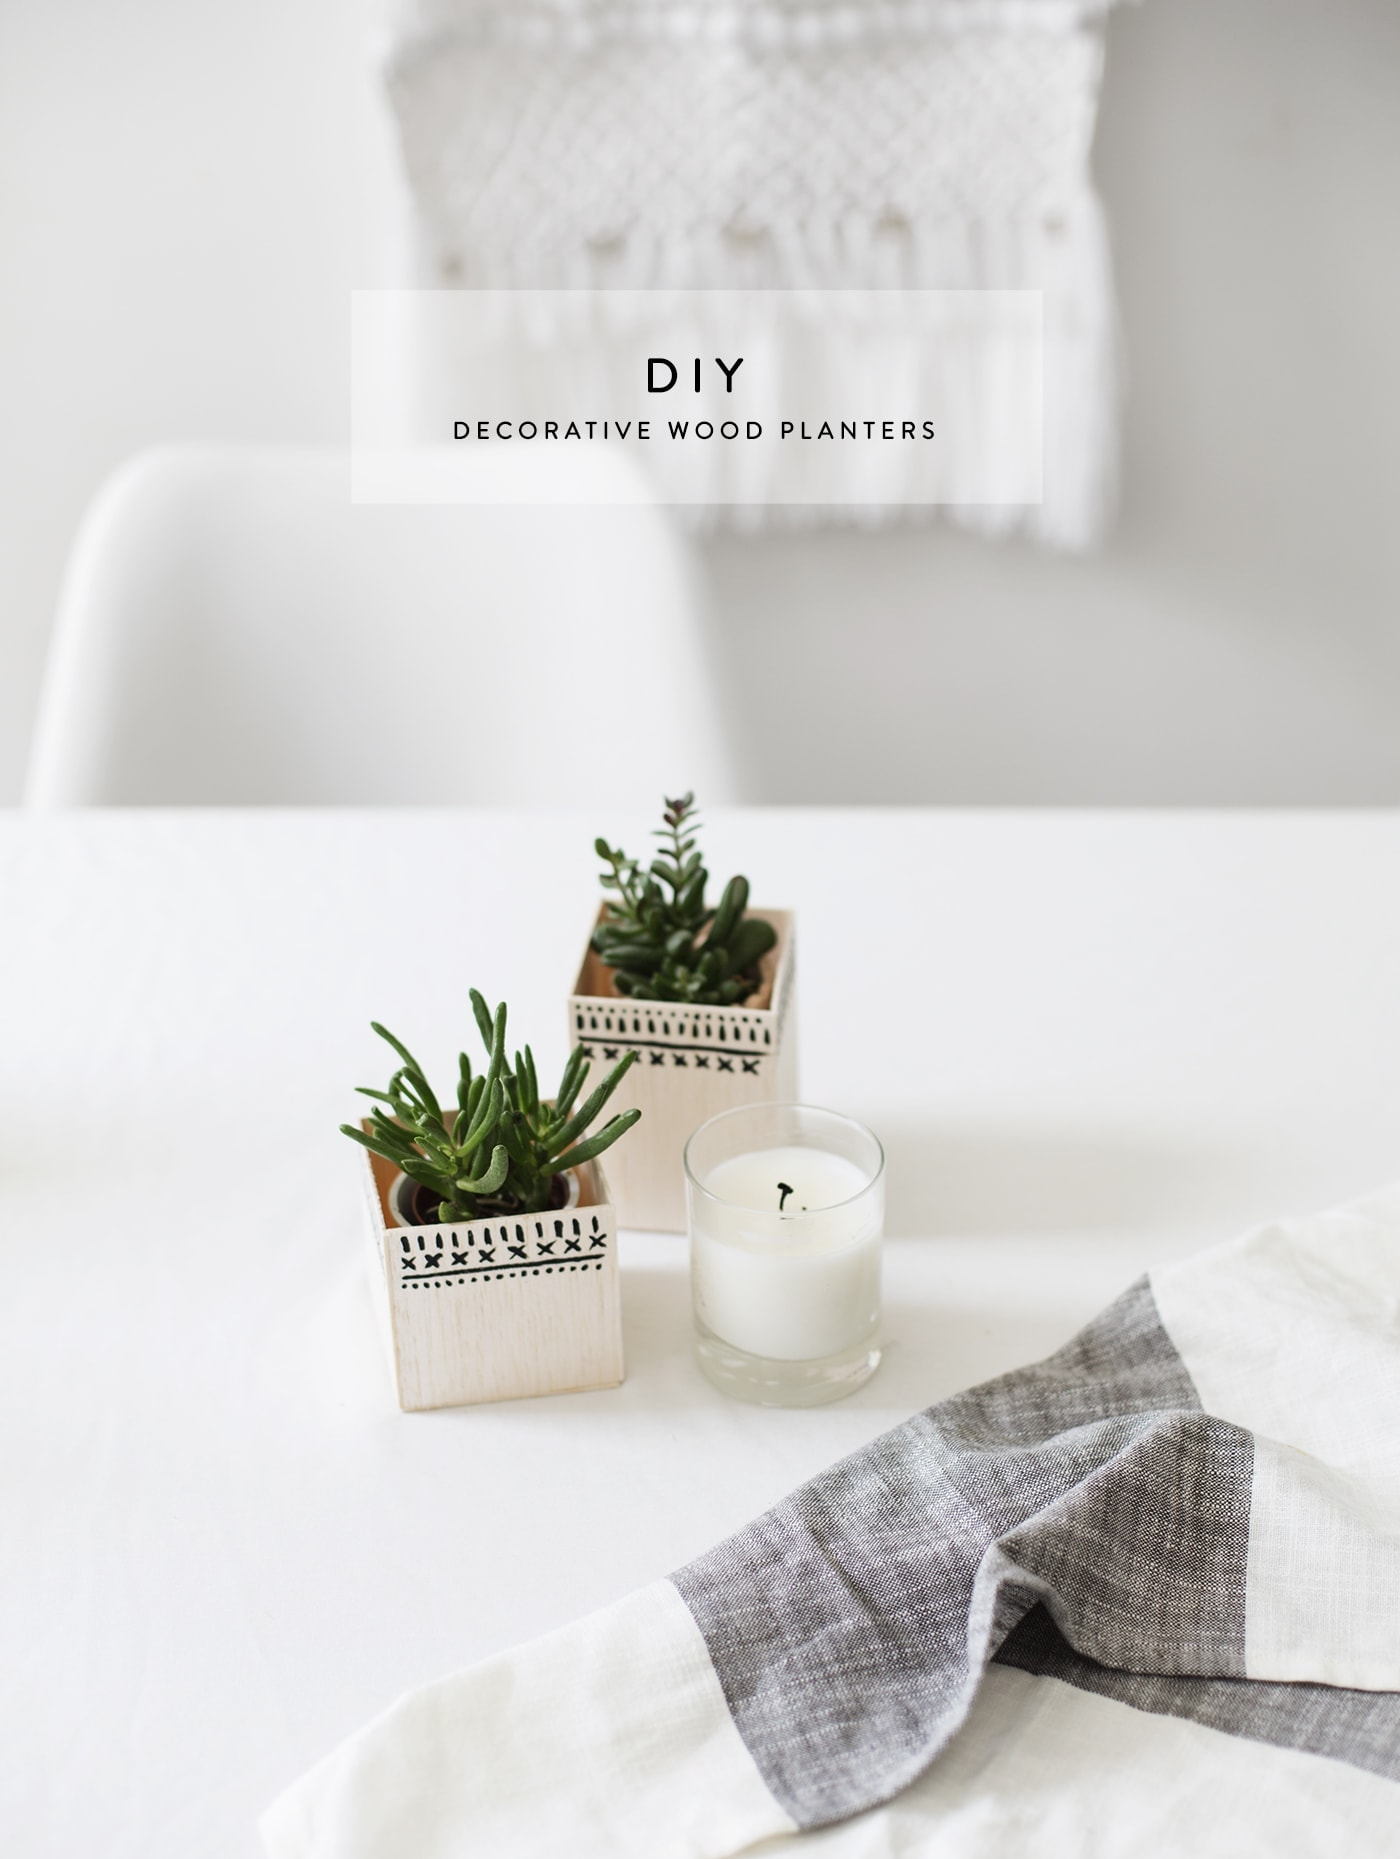 DIY decorative wood planters | easy home craft ideas